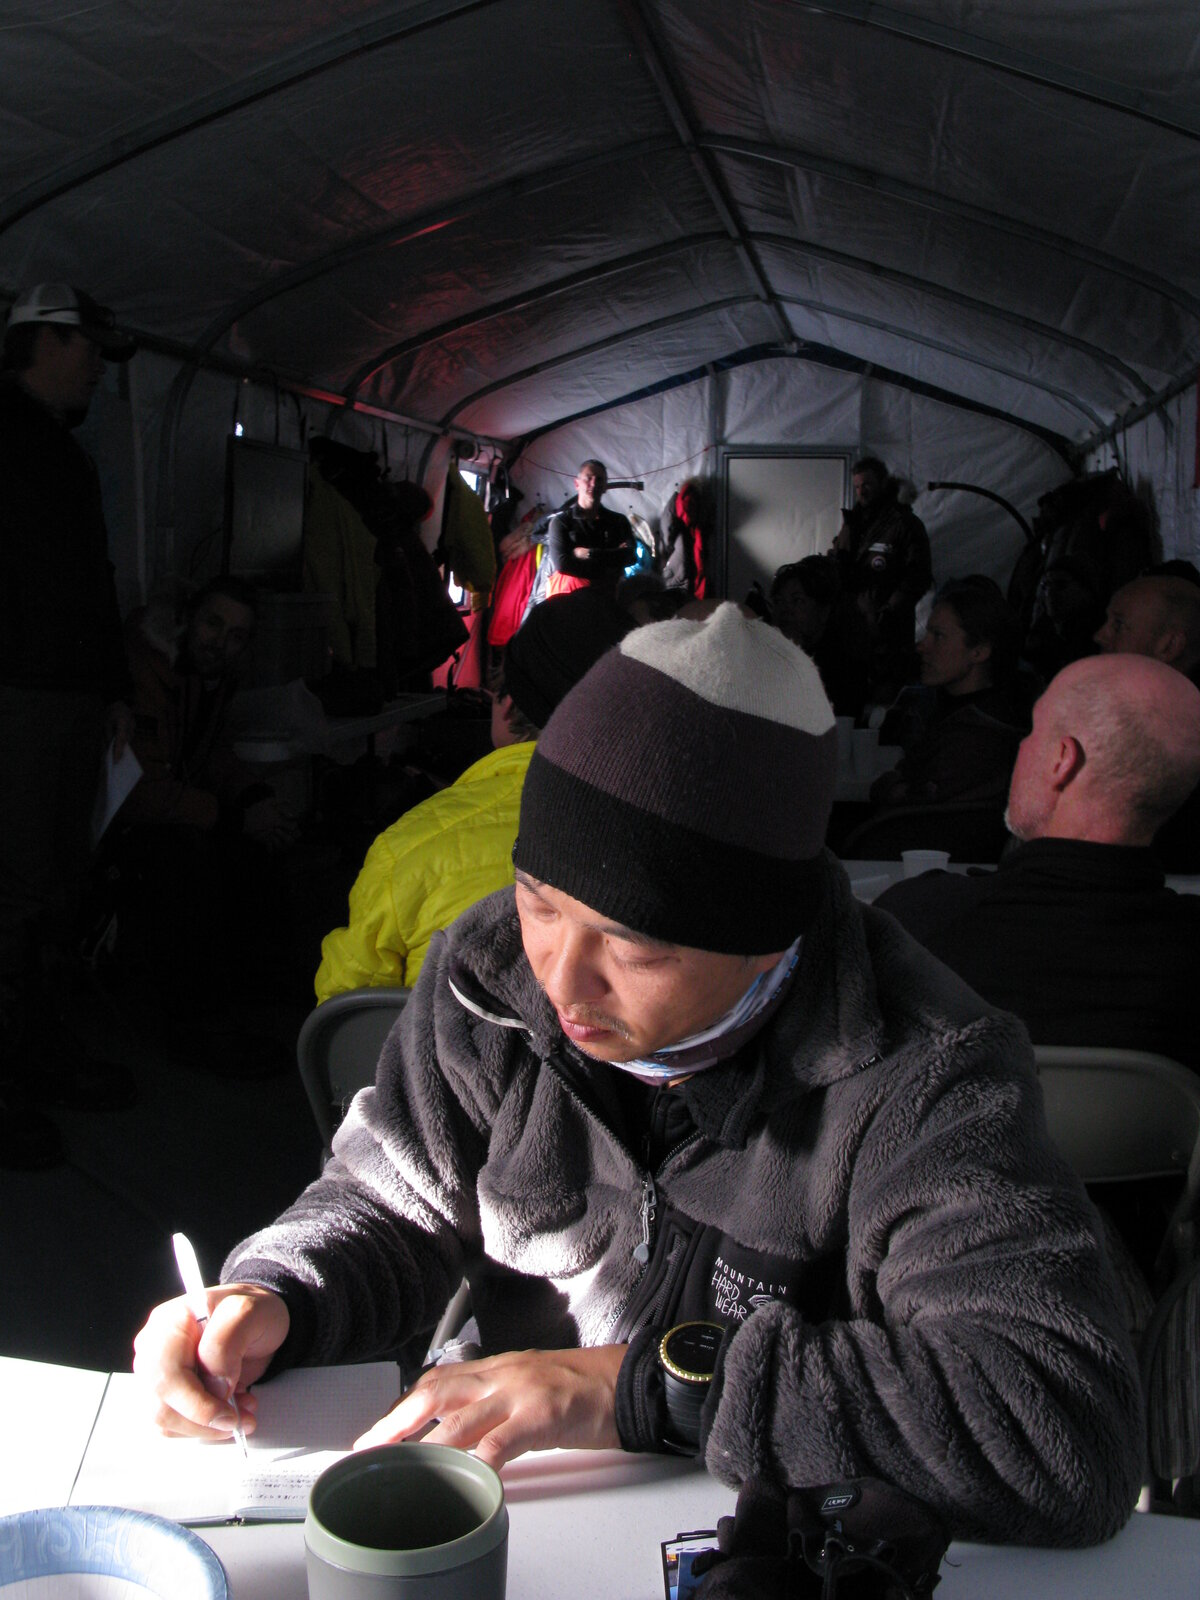 Guests journals inside dining tent at ALE's South Pole Camp